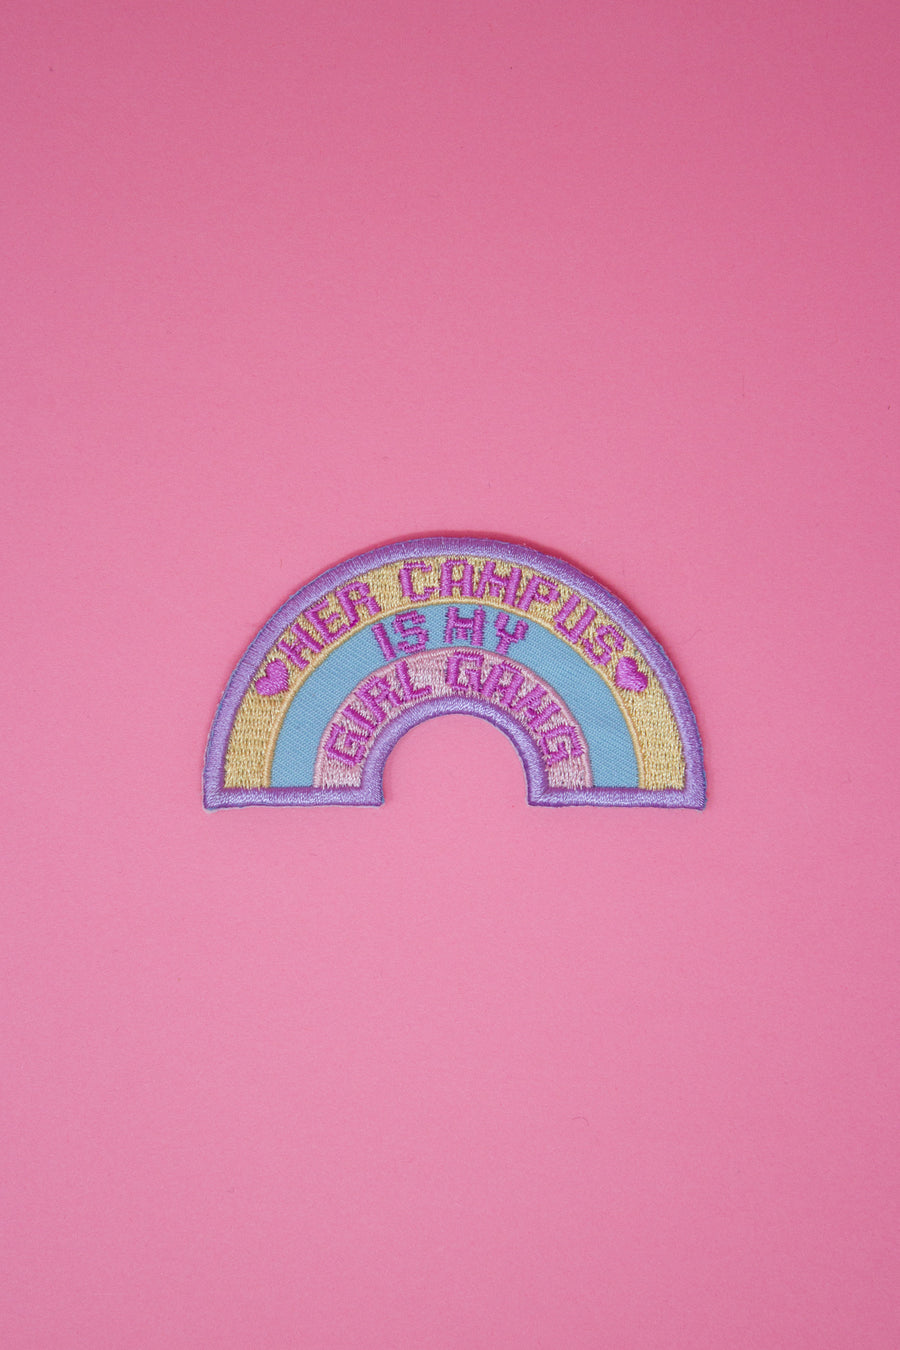 Her Campus Girl Gang Patch